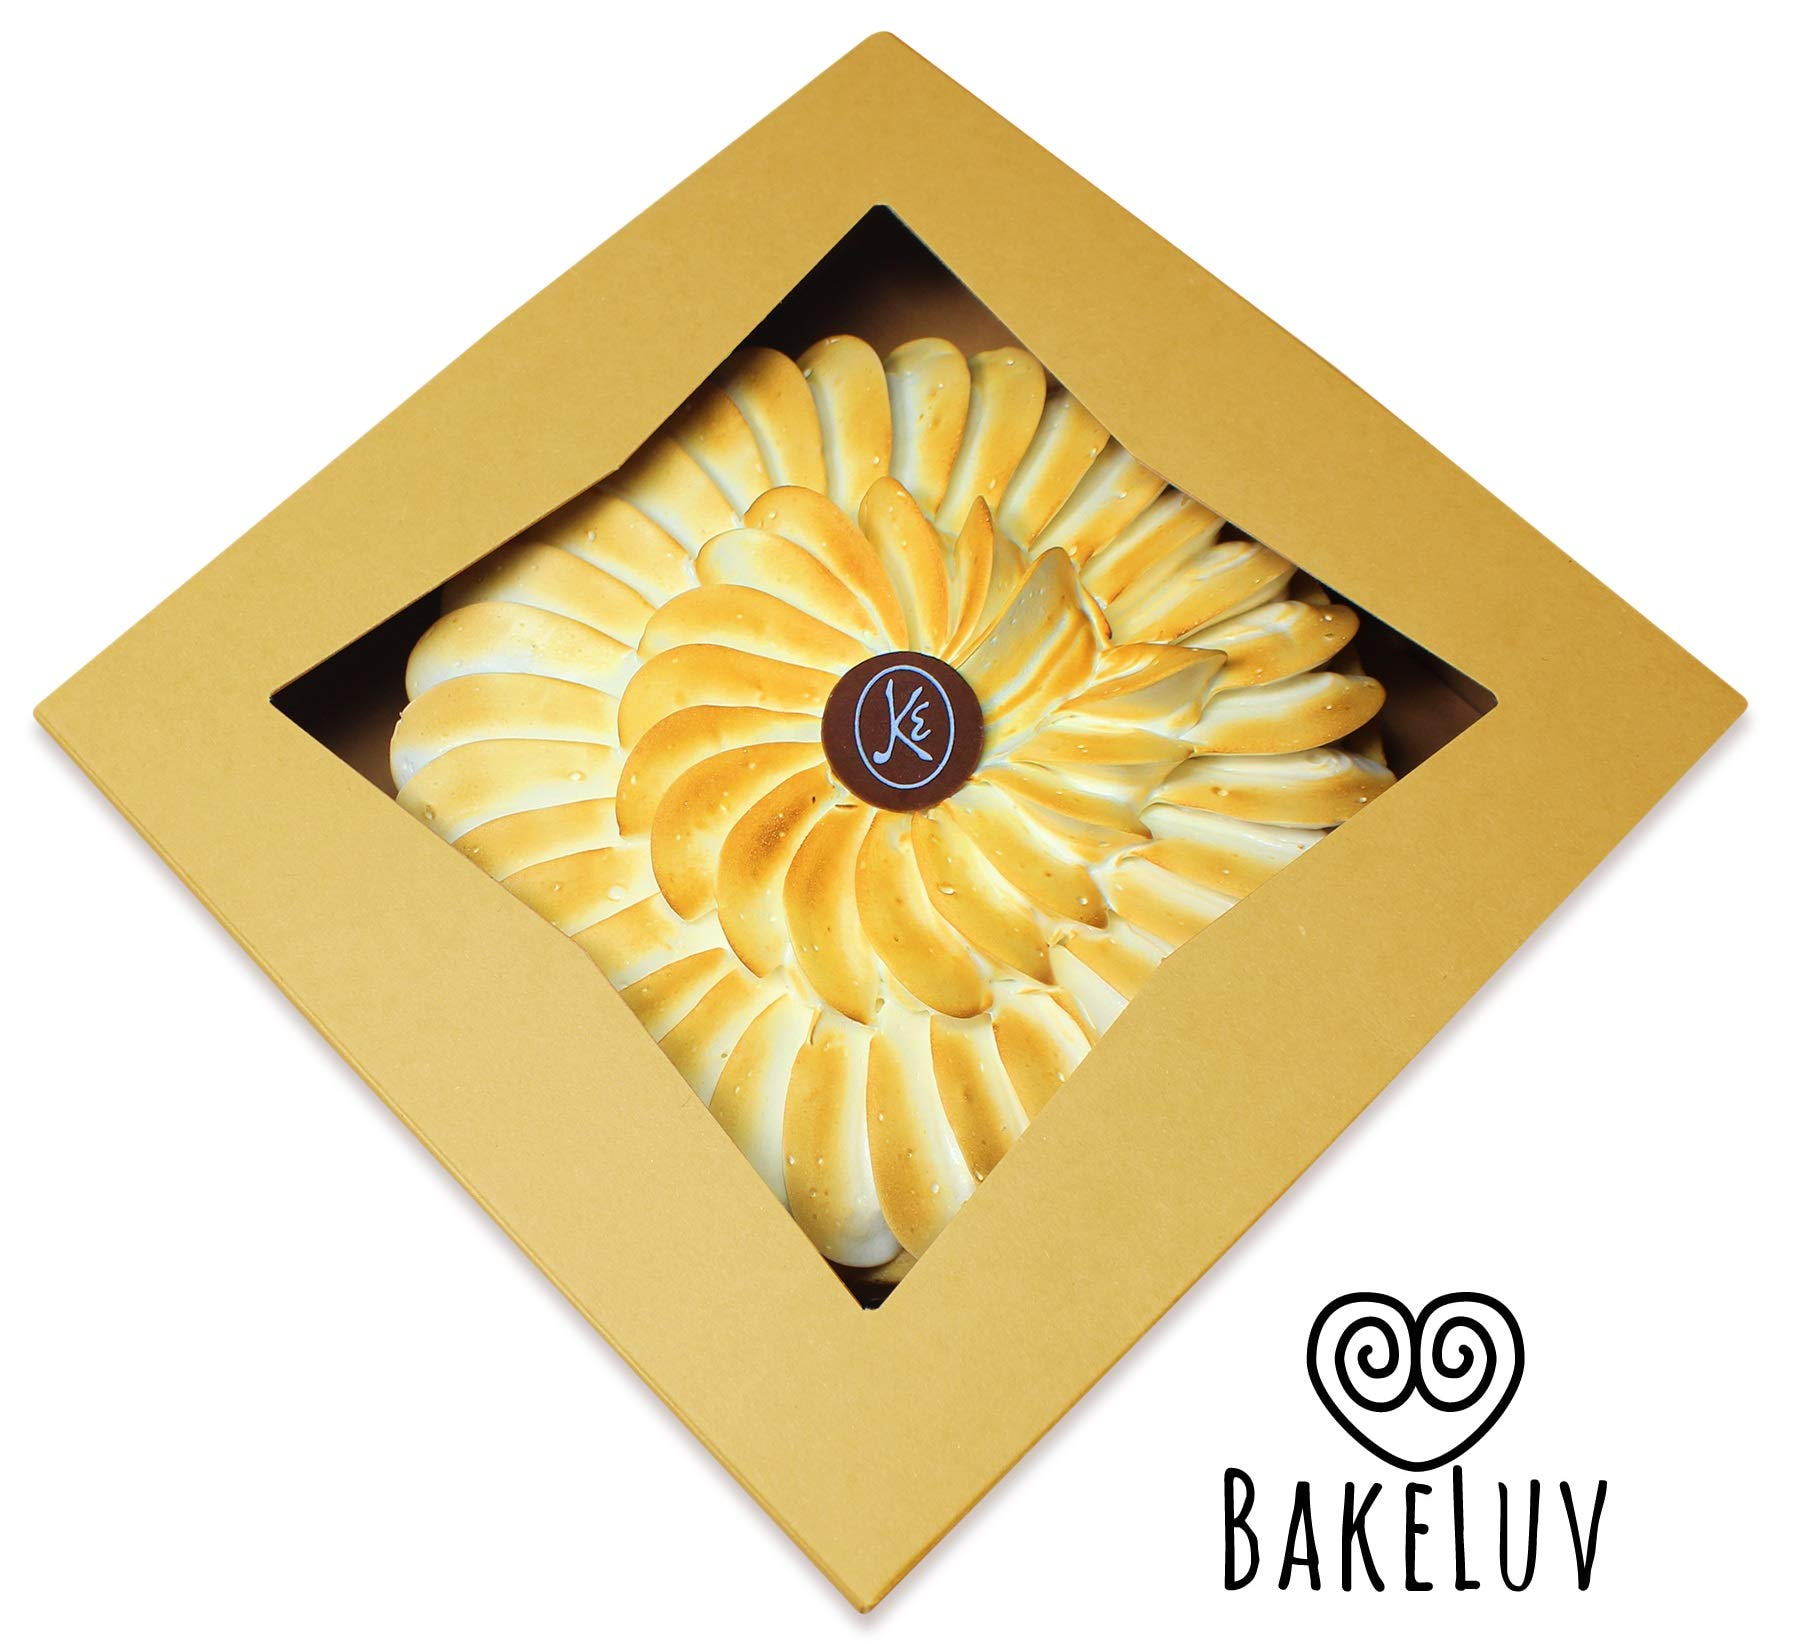 BakeLuv Brown Bakery Boxes with Window 9x9x2.5 inches | 25 Pack | Auto-Popup | Thick & Sturdy 350 GSM | Mini Pie Boxes with Window, Cake Boxes, Cookie Boxes, Dessert, Take Out Boxes, Pastry Boxes by BakeLuv